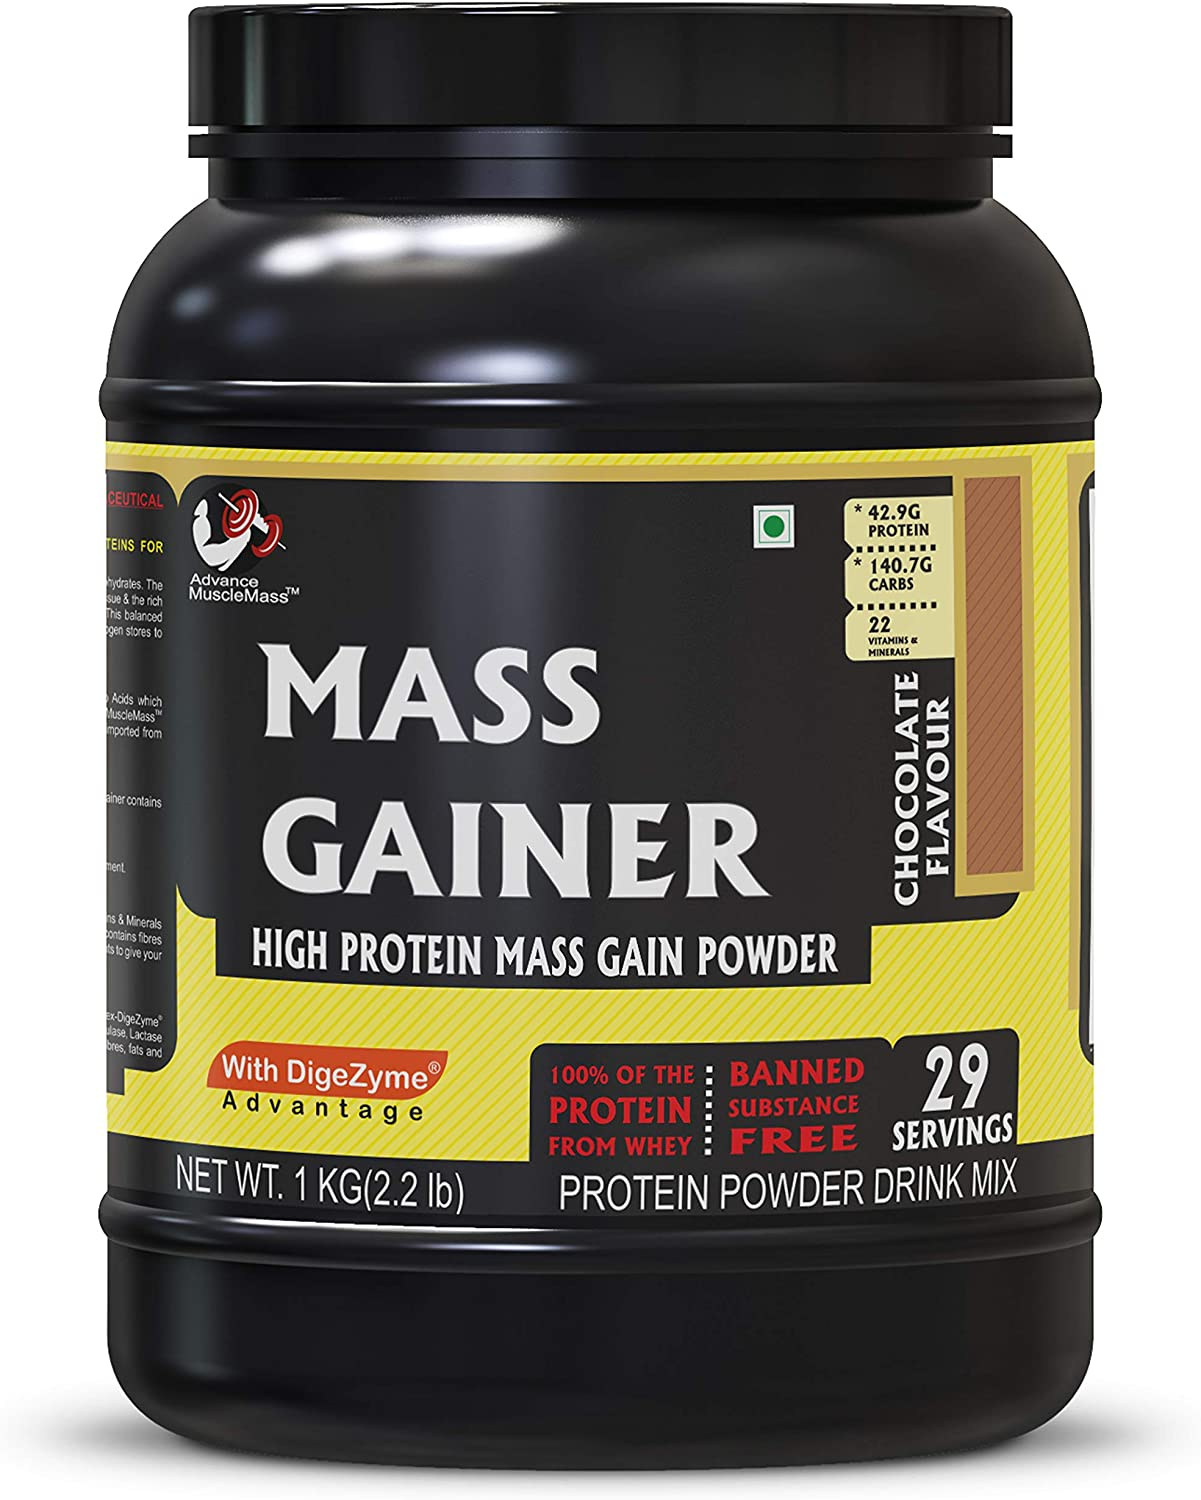 Advance MuscleMass High Protein Mass Gainer